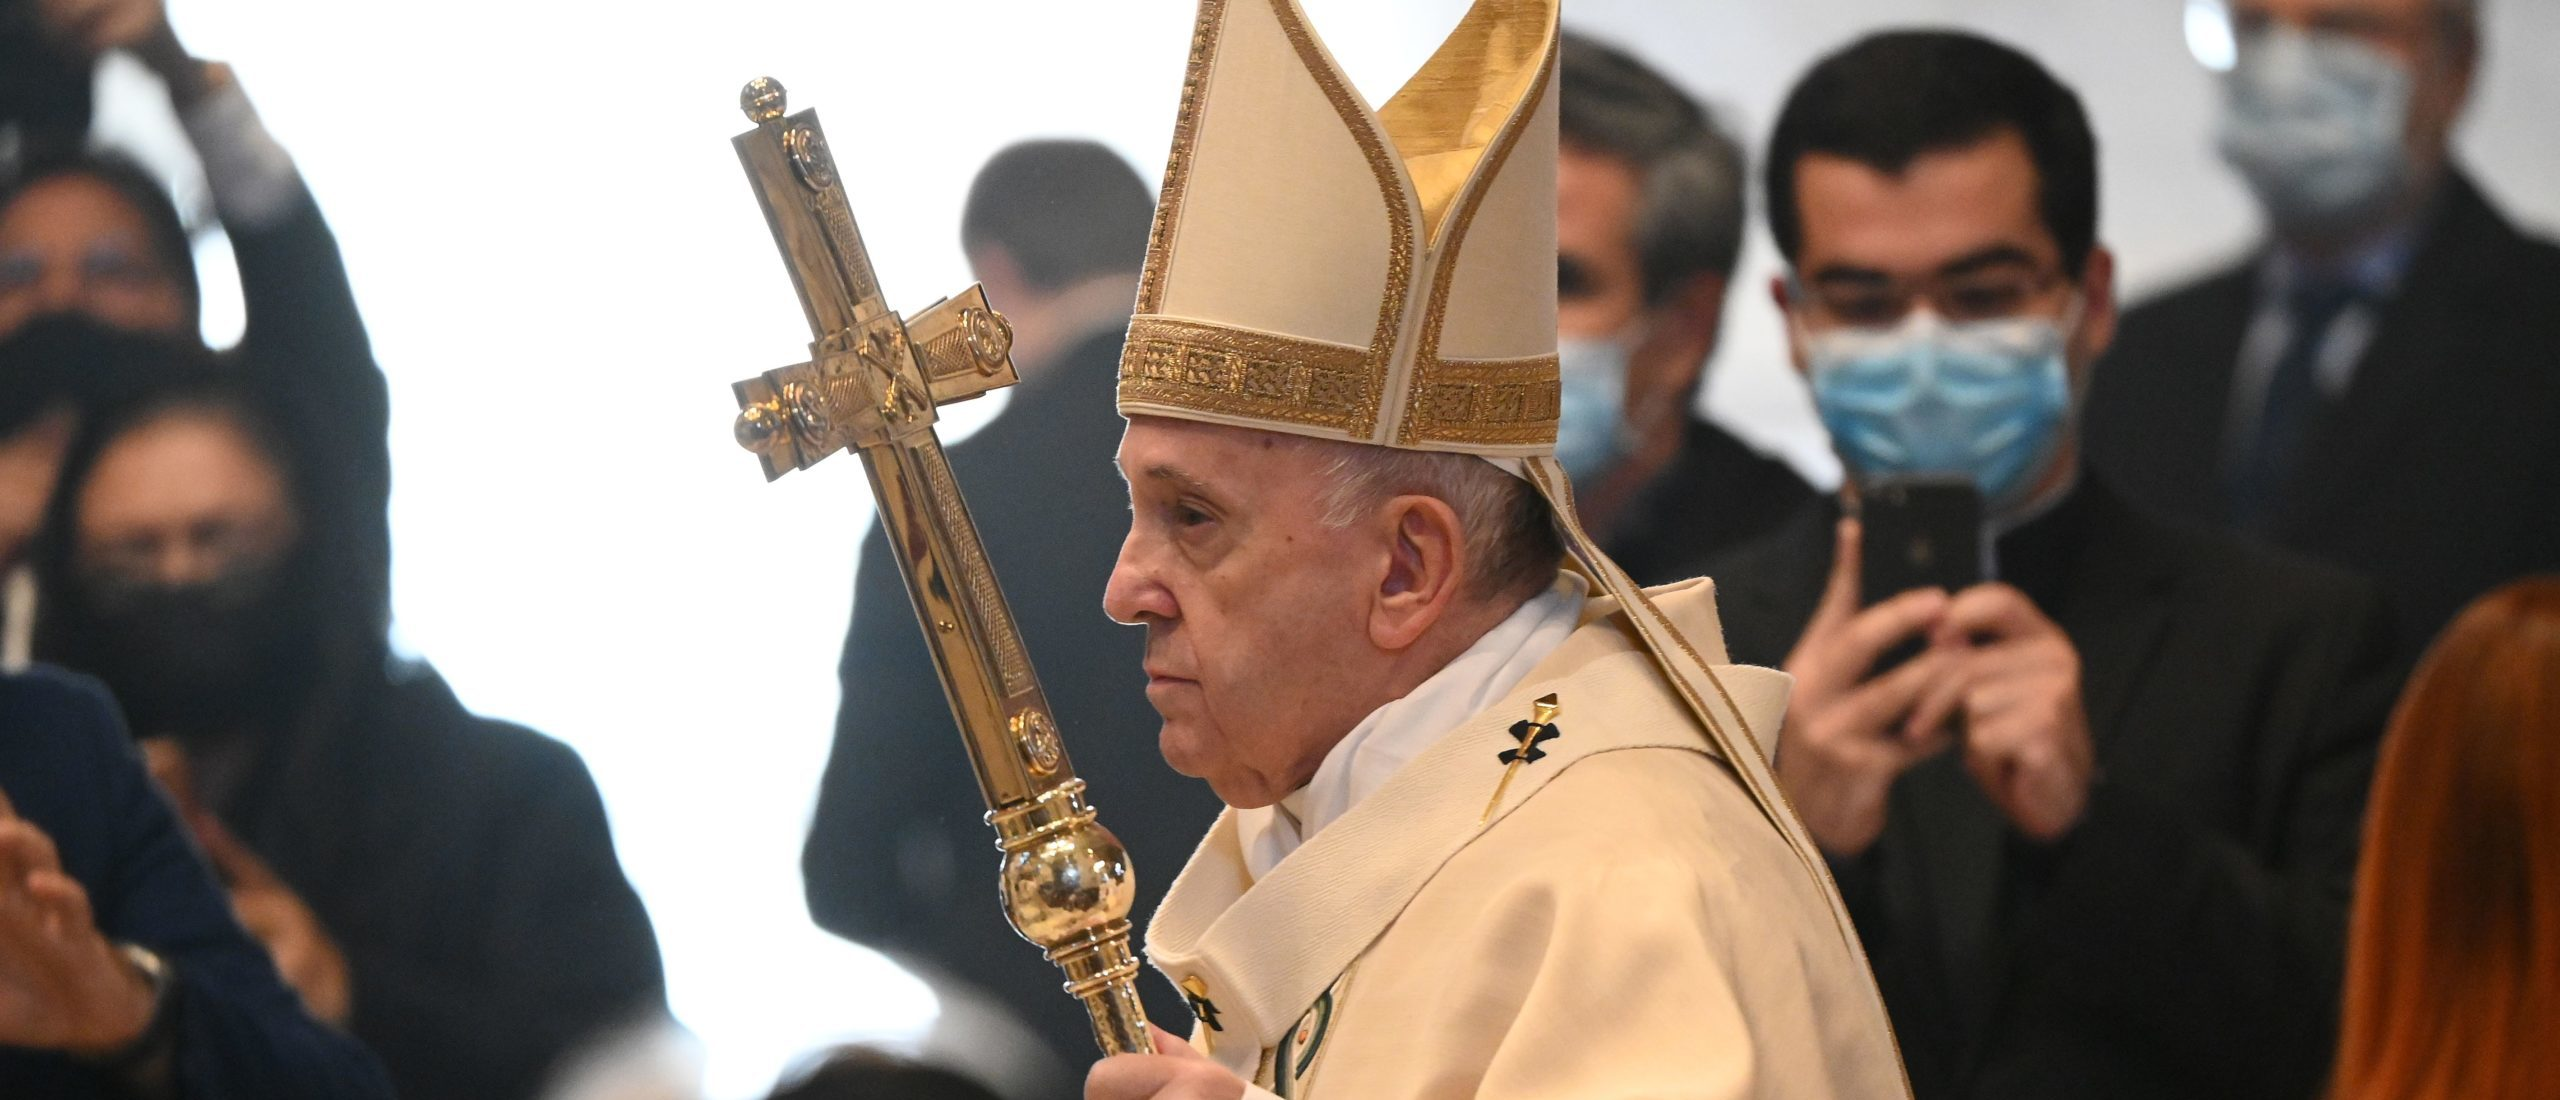 Pope Francis Names Uighurs As Persecuted Group For...